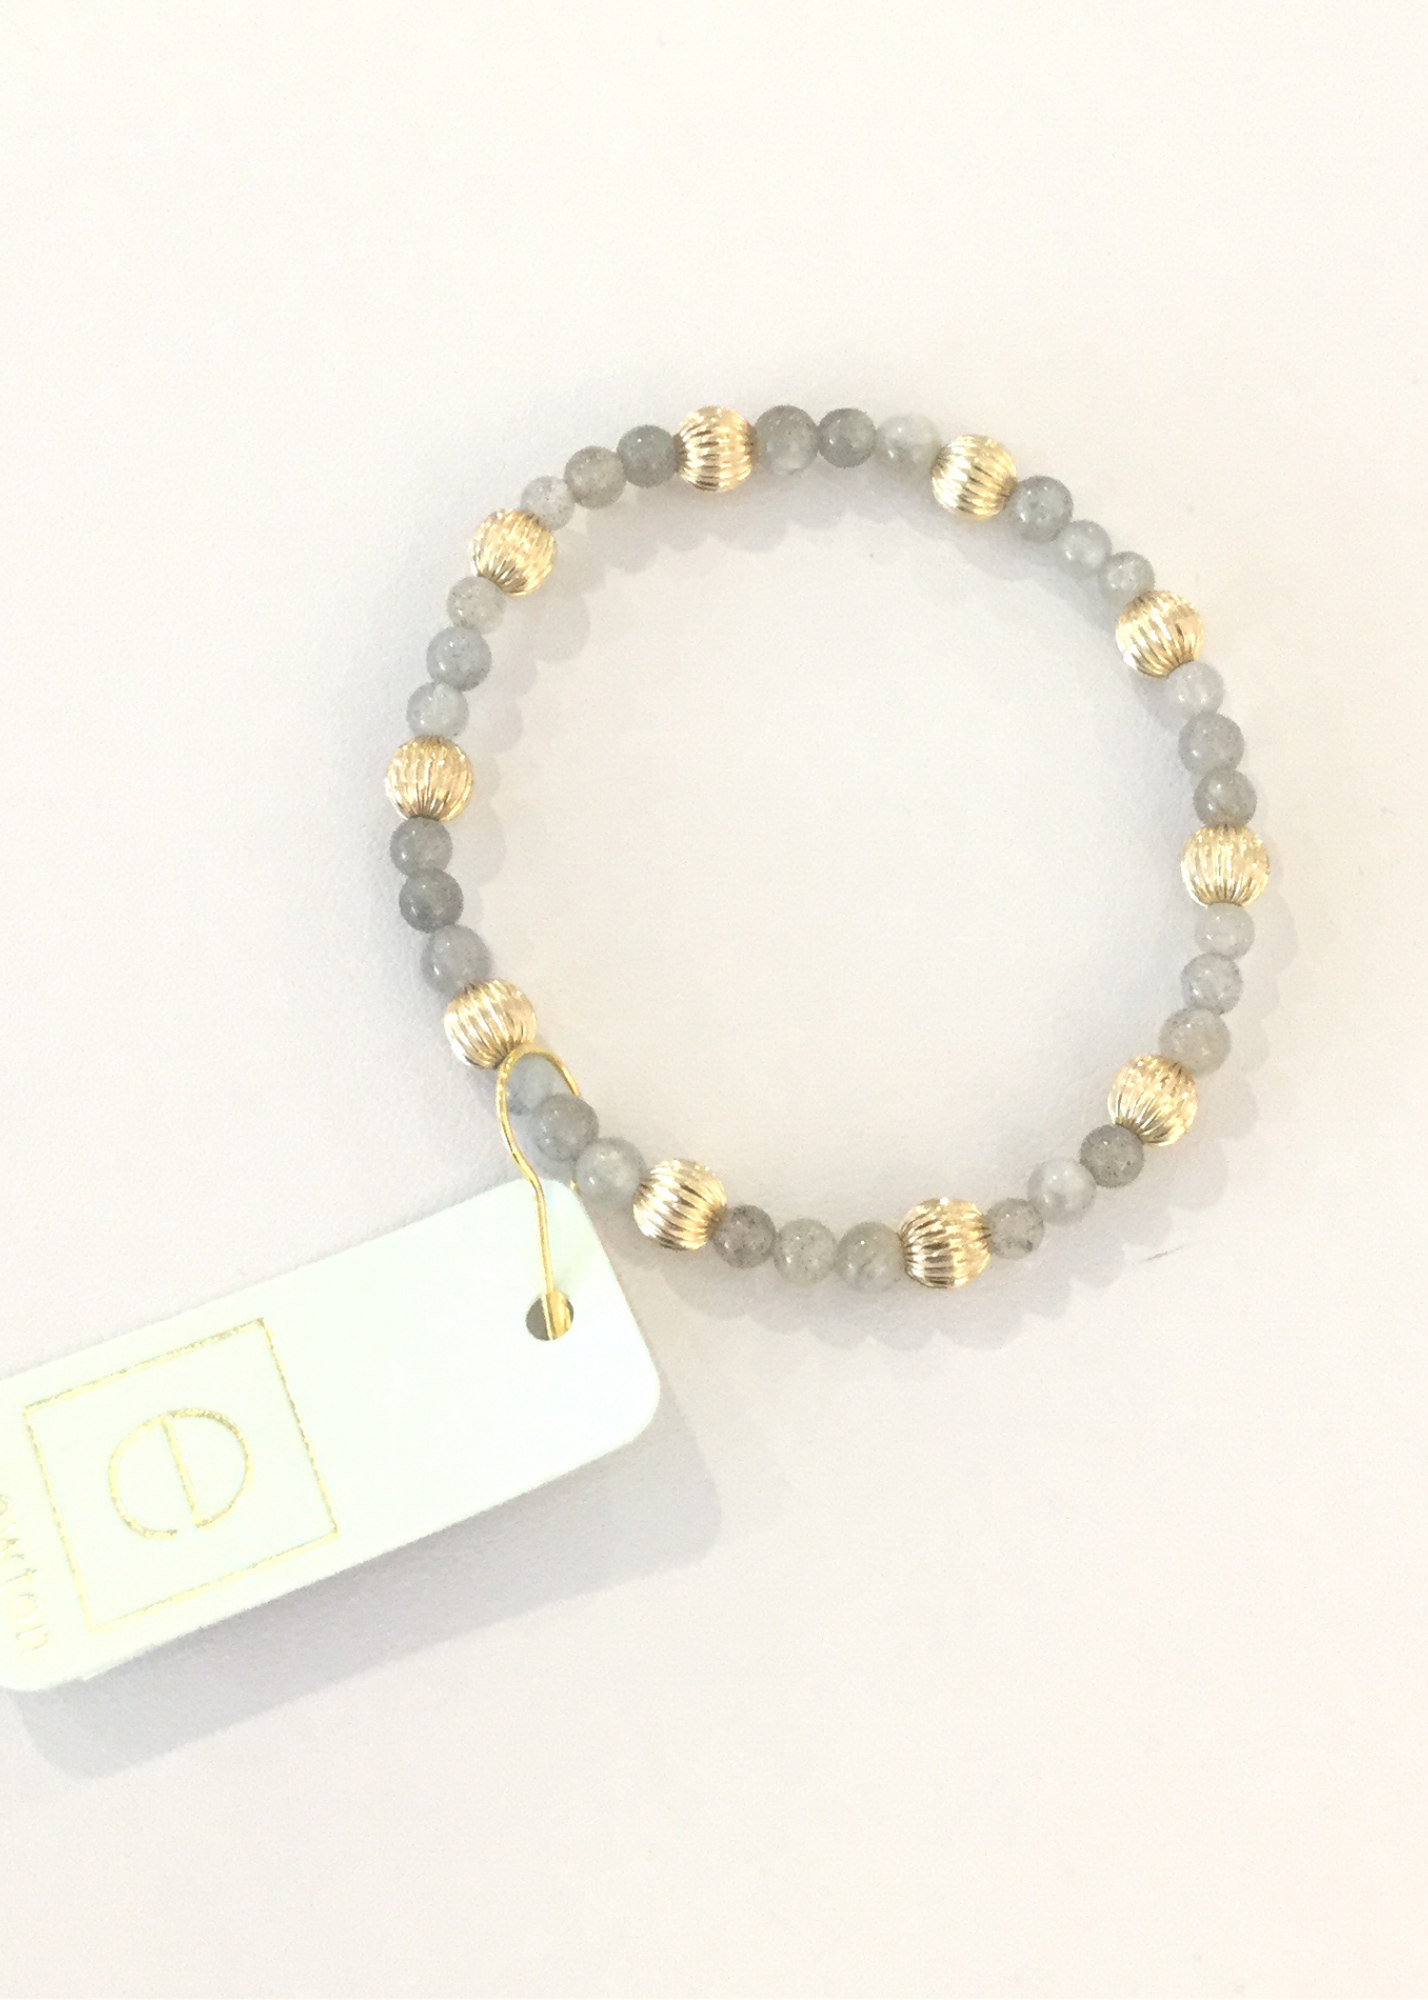 Bead Bracelet - Sincerity Pattern 4mm Dignity Gold 6mm Labradorite